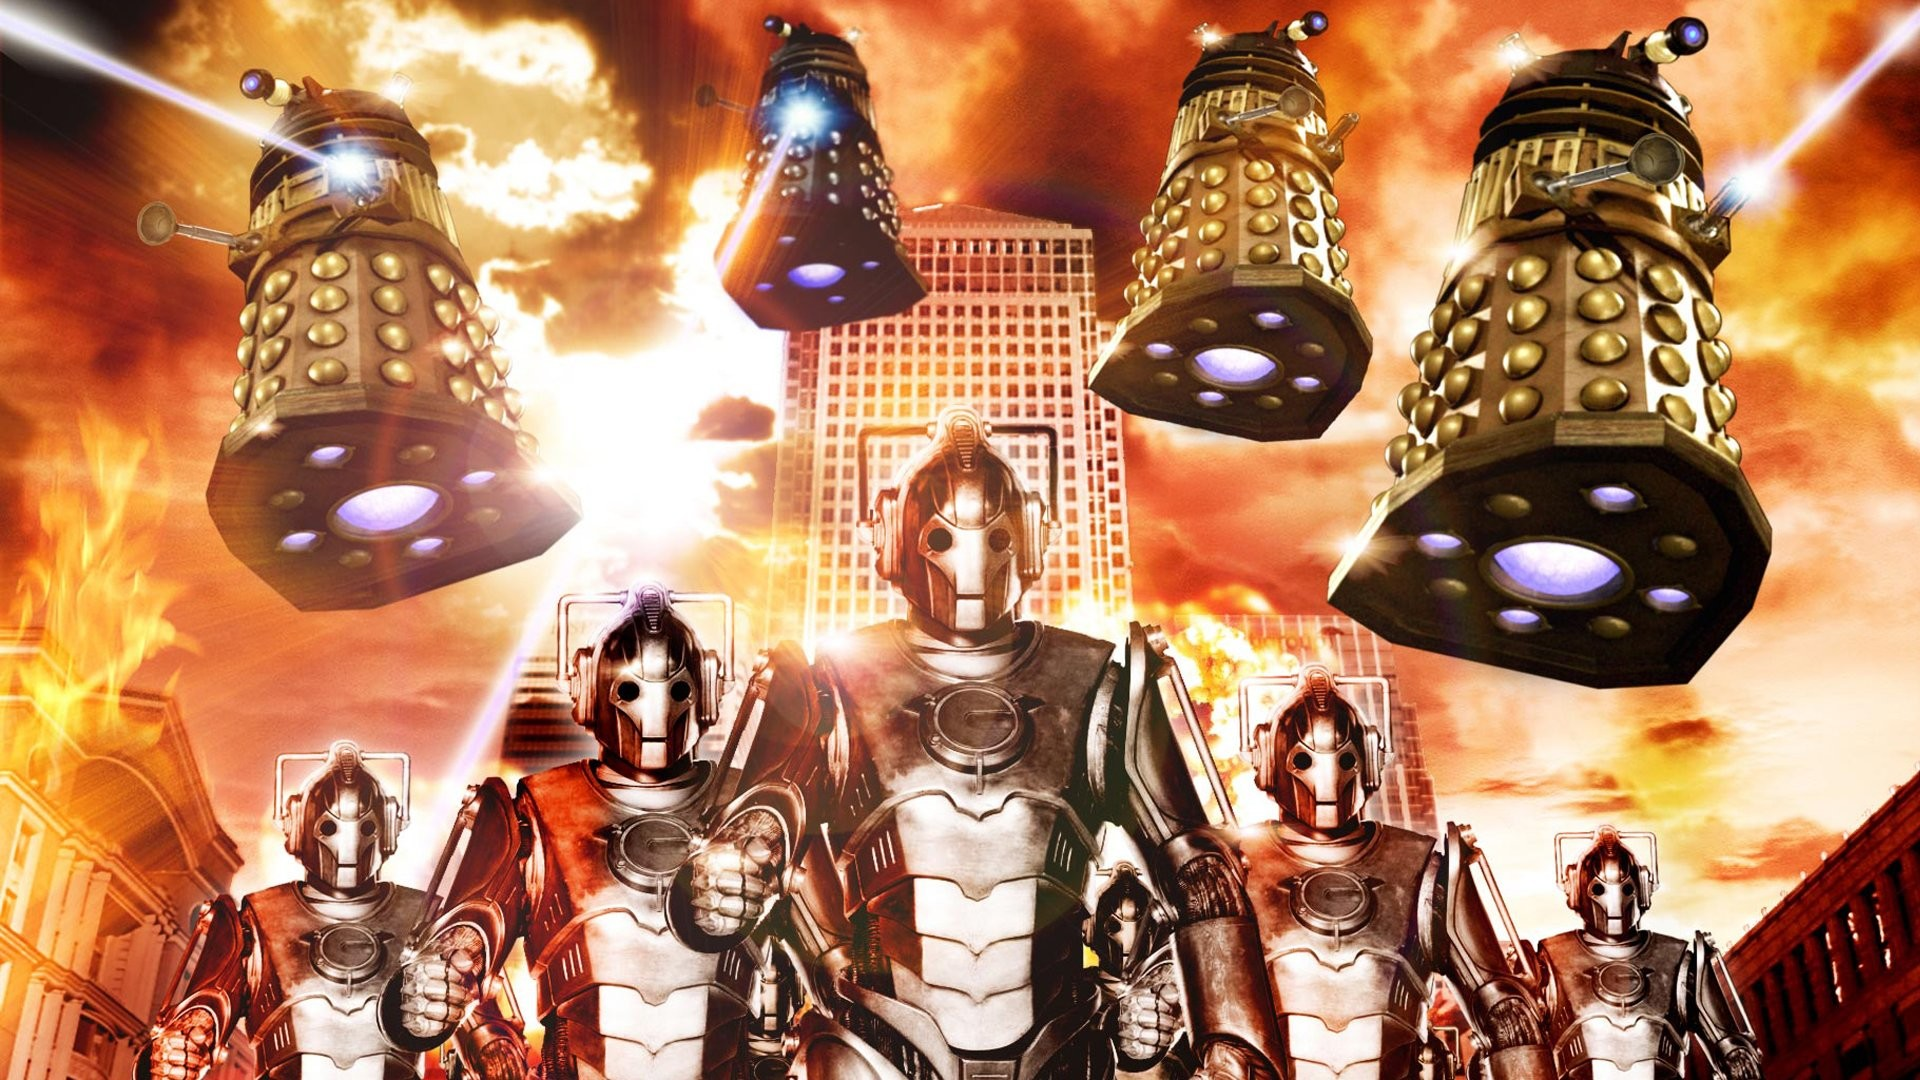 1920x1080 Dalek Doctor Who · HD Wallpaper | Background Image ID:76483